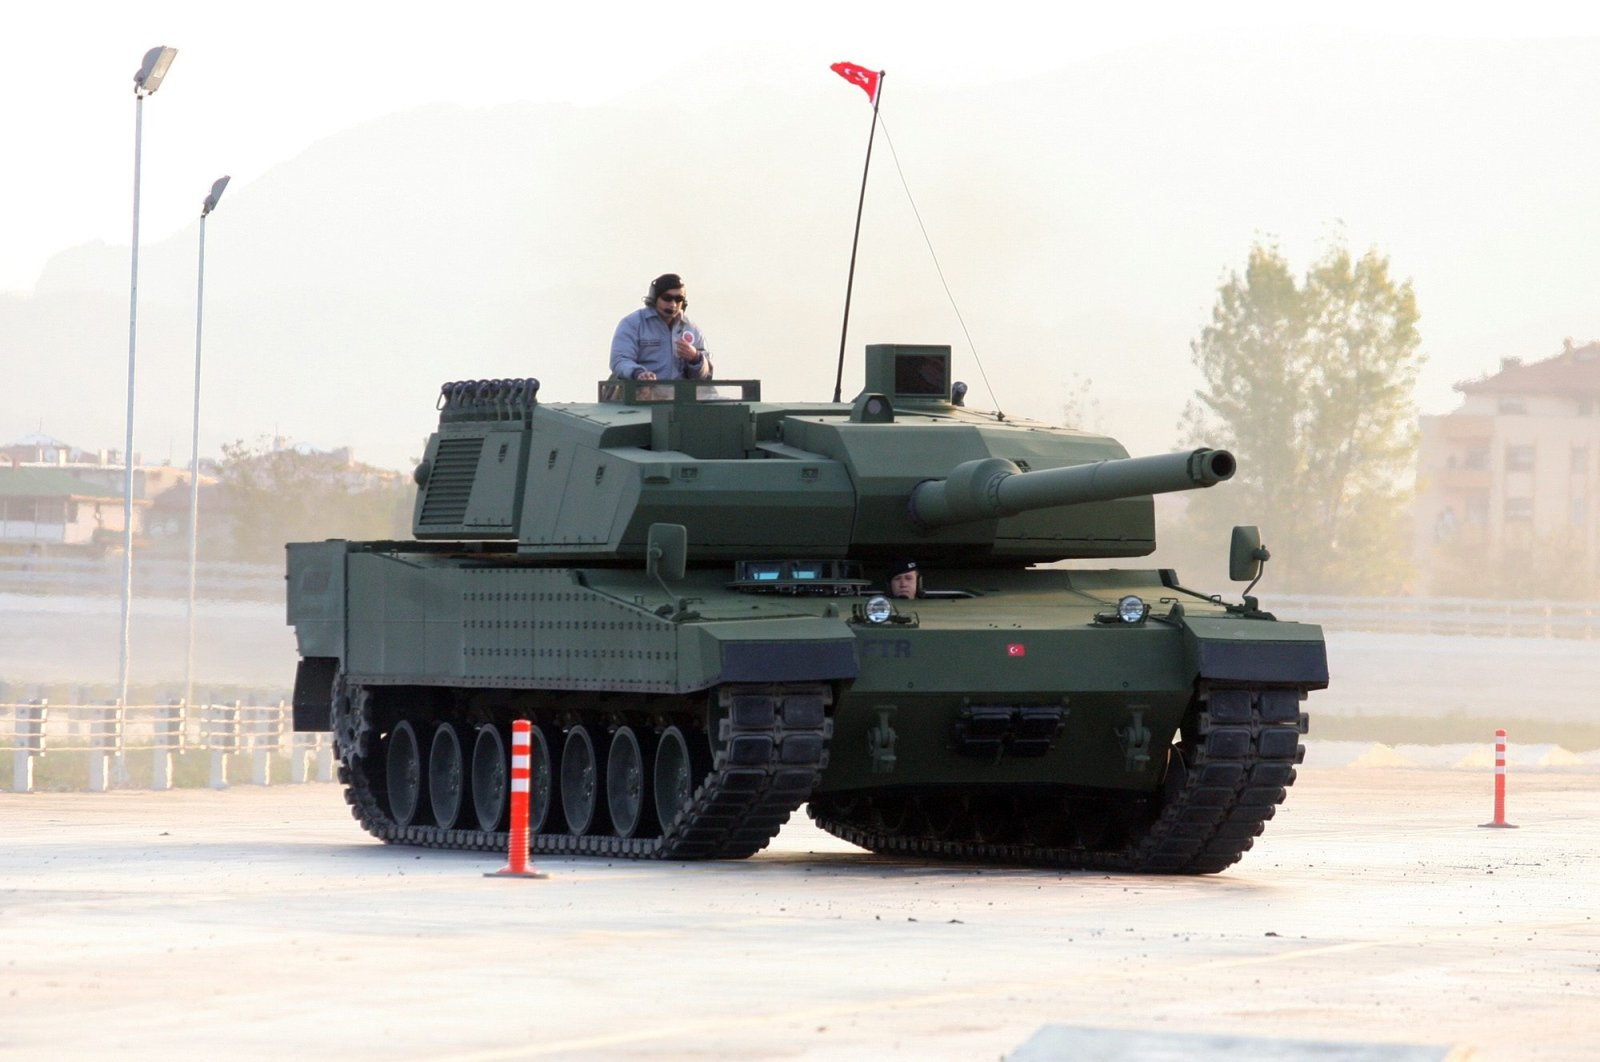 Turkey's main battle tank Altay seen in this file photo, Nov. 15, 2012. (Photo by Mesut Er)